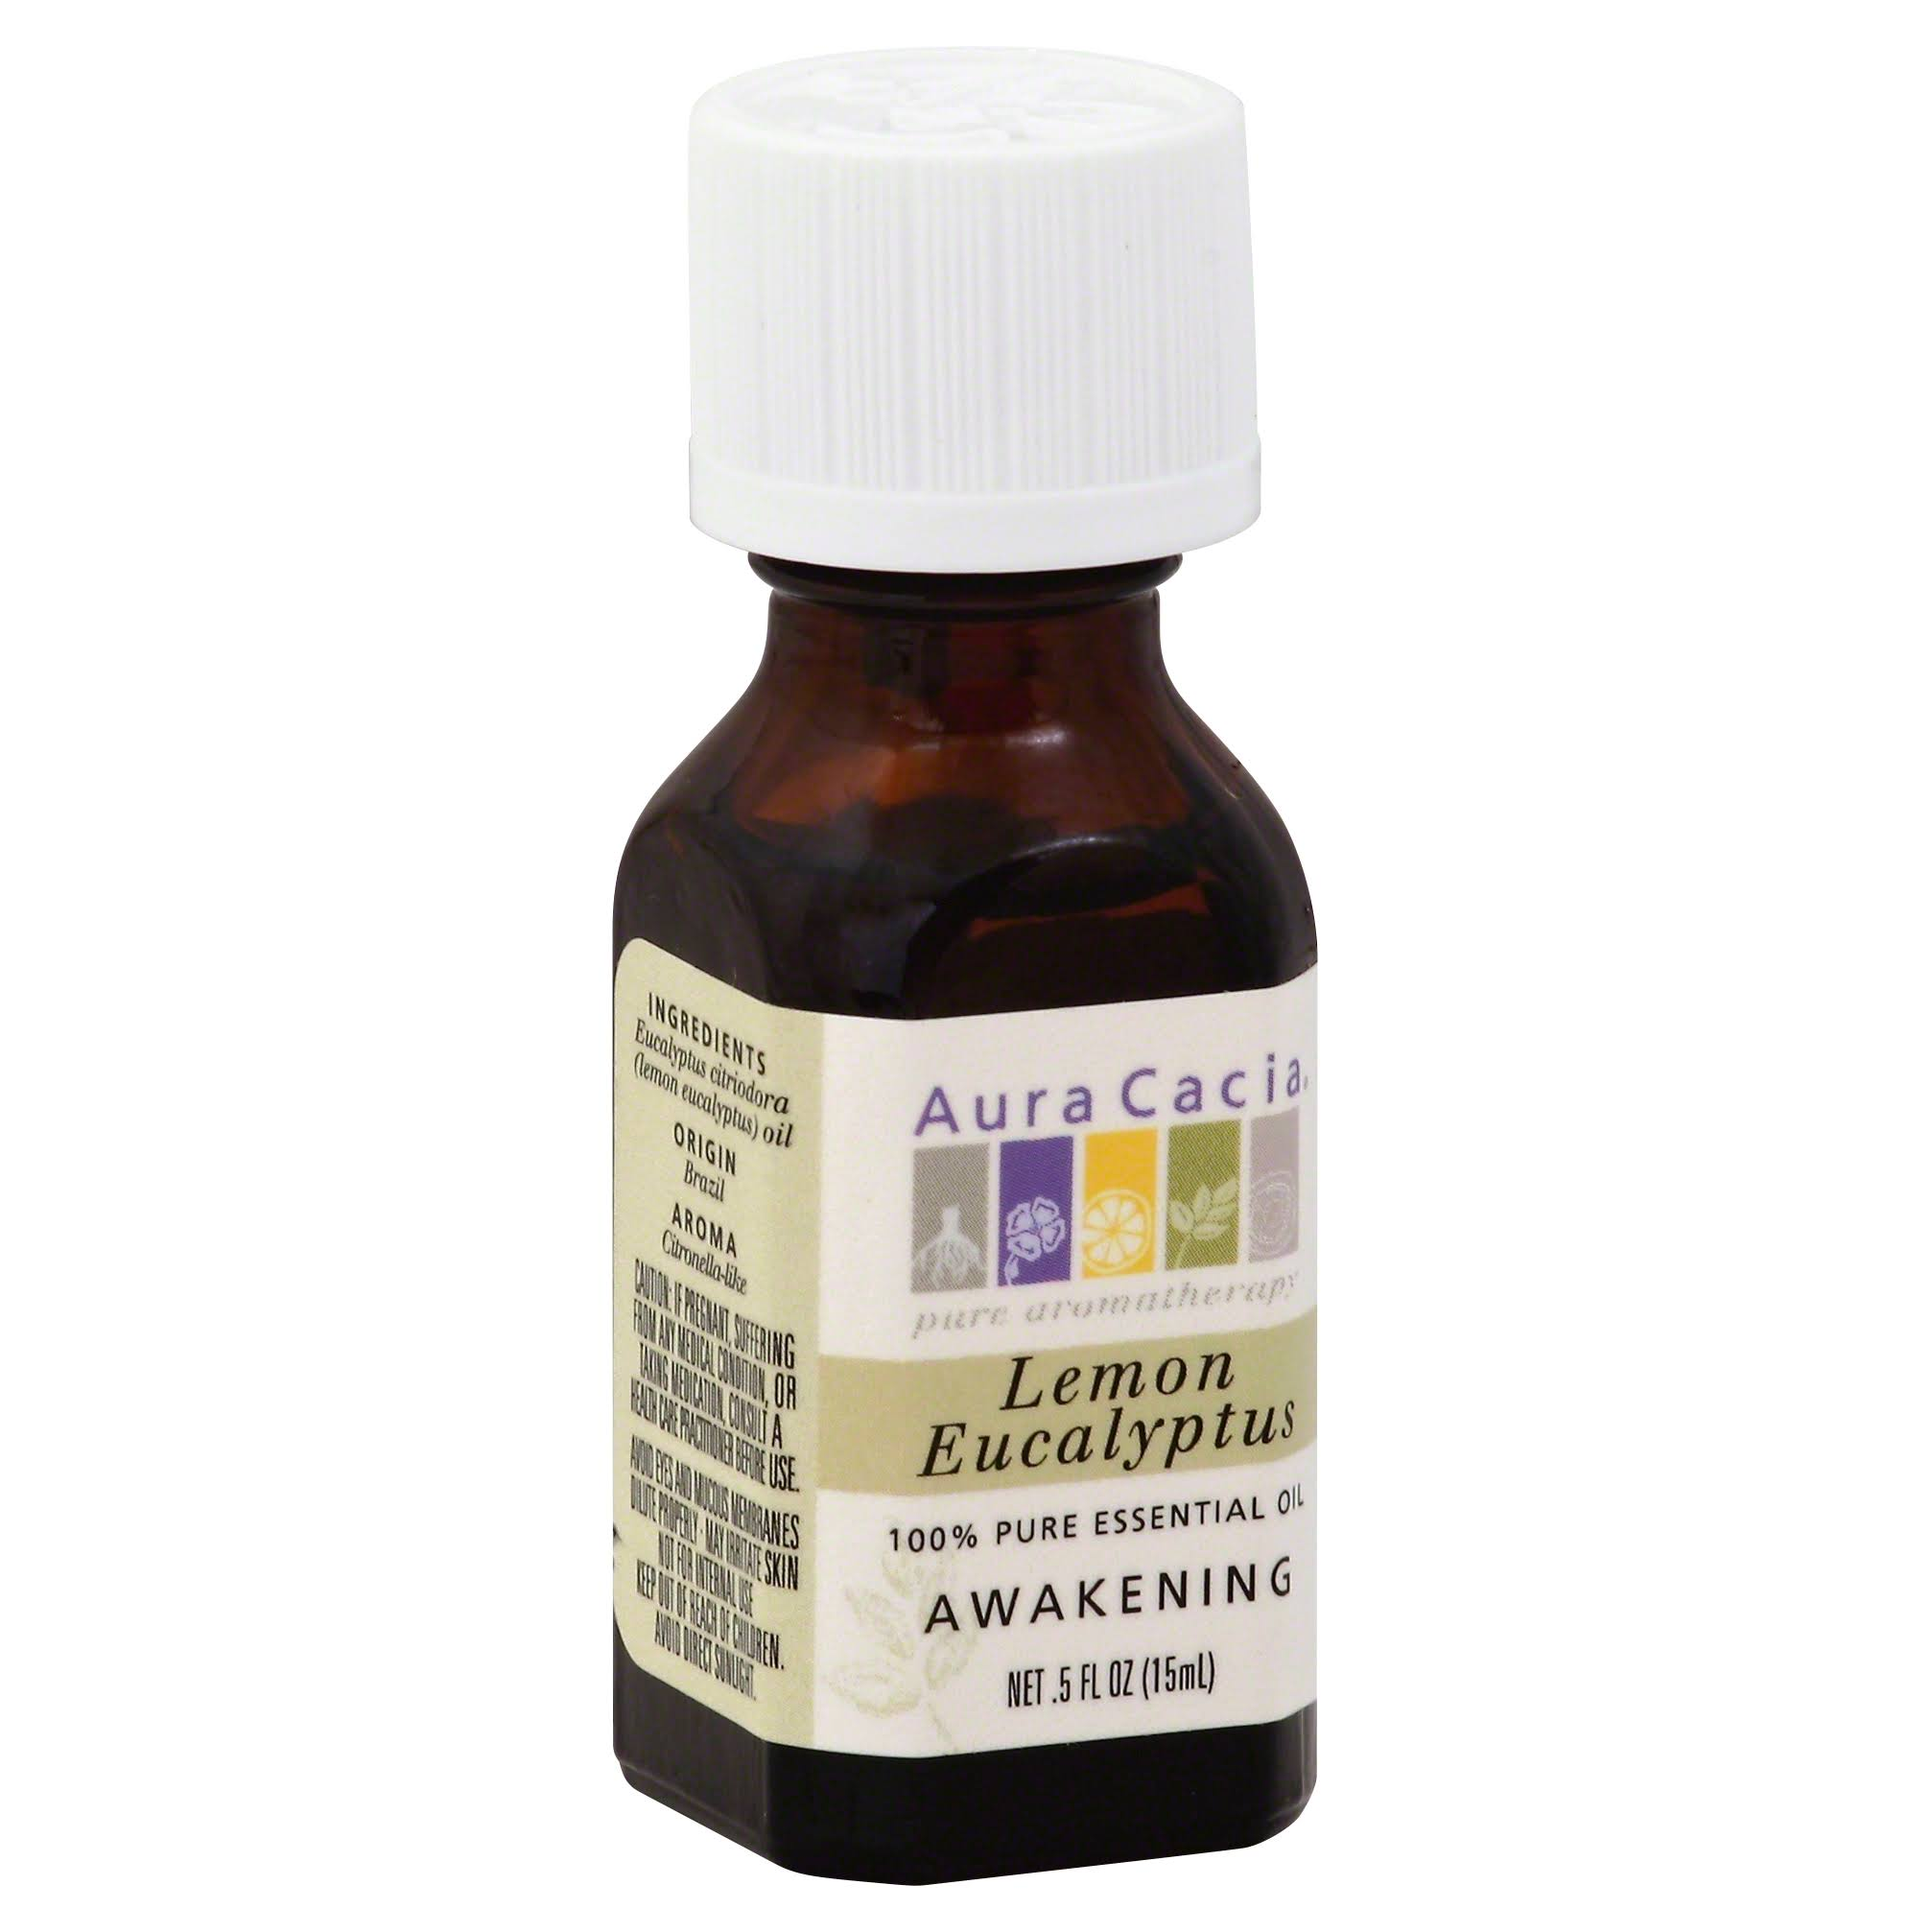 Aura Cacia 100% Pure Essential Oil - Lemon Eucalyptus, 0.5oz